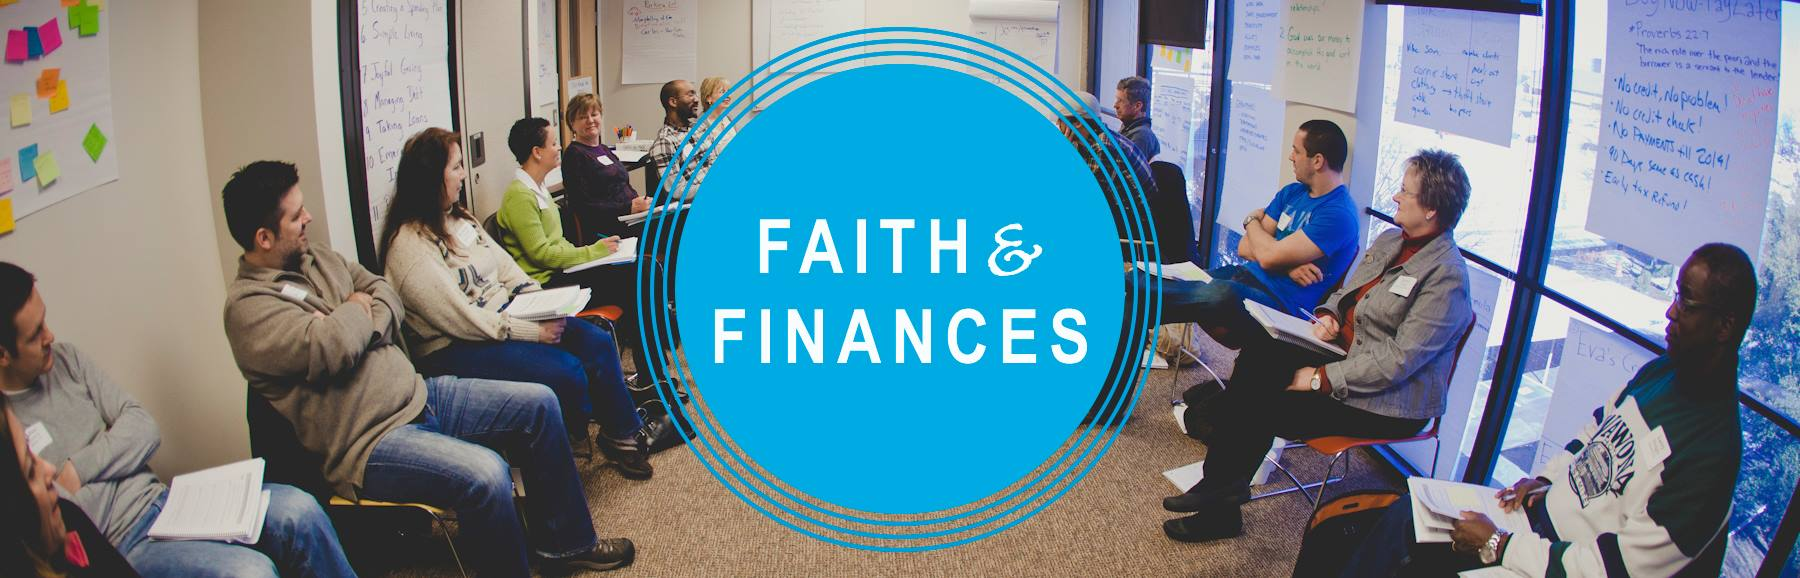 Faith & Finances February 2018 Registration